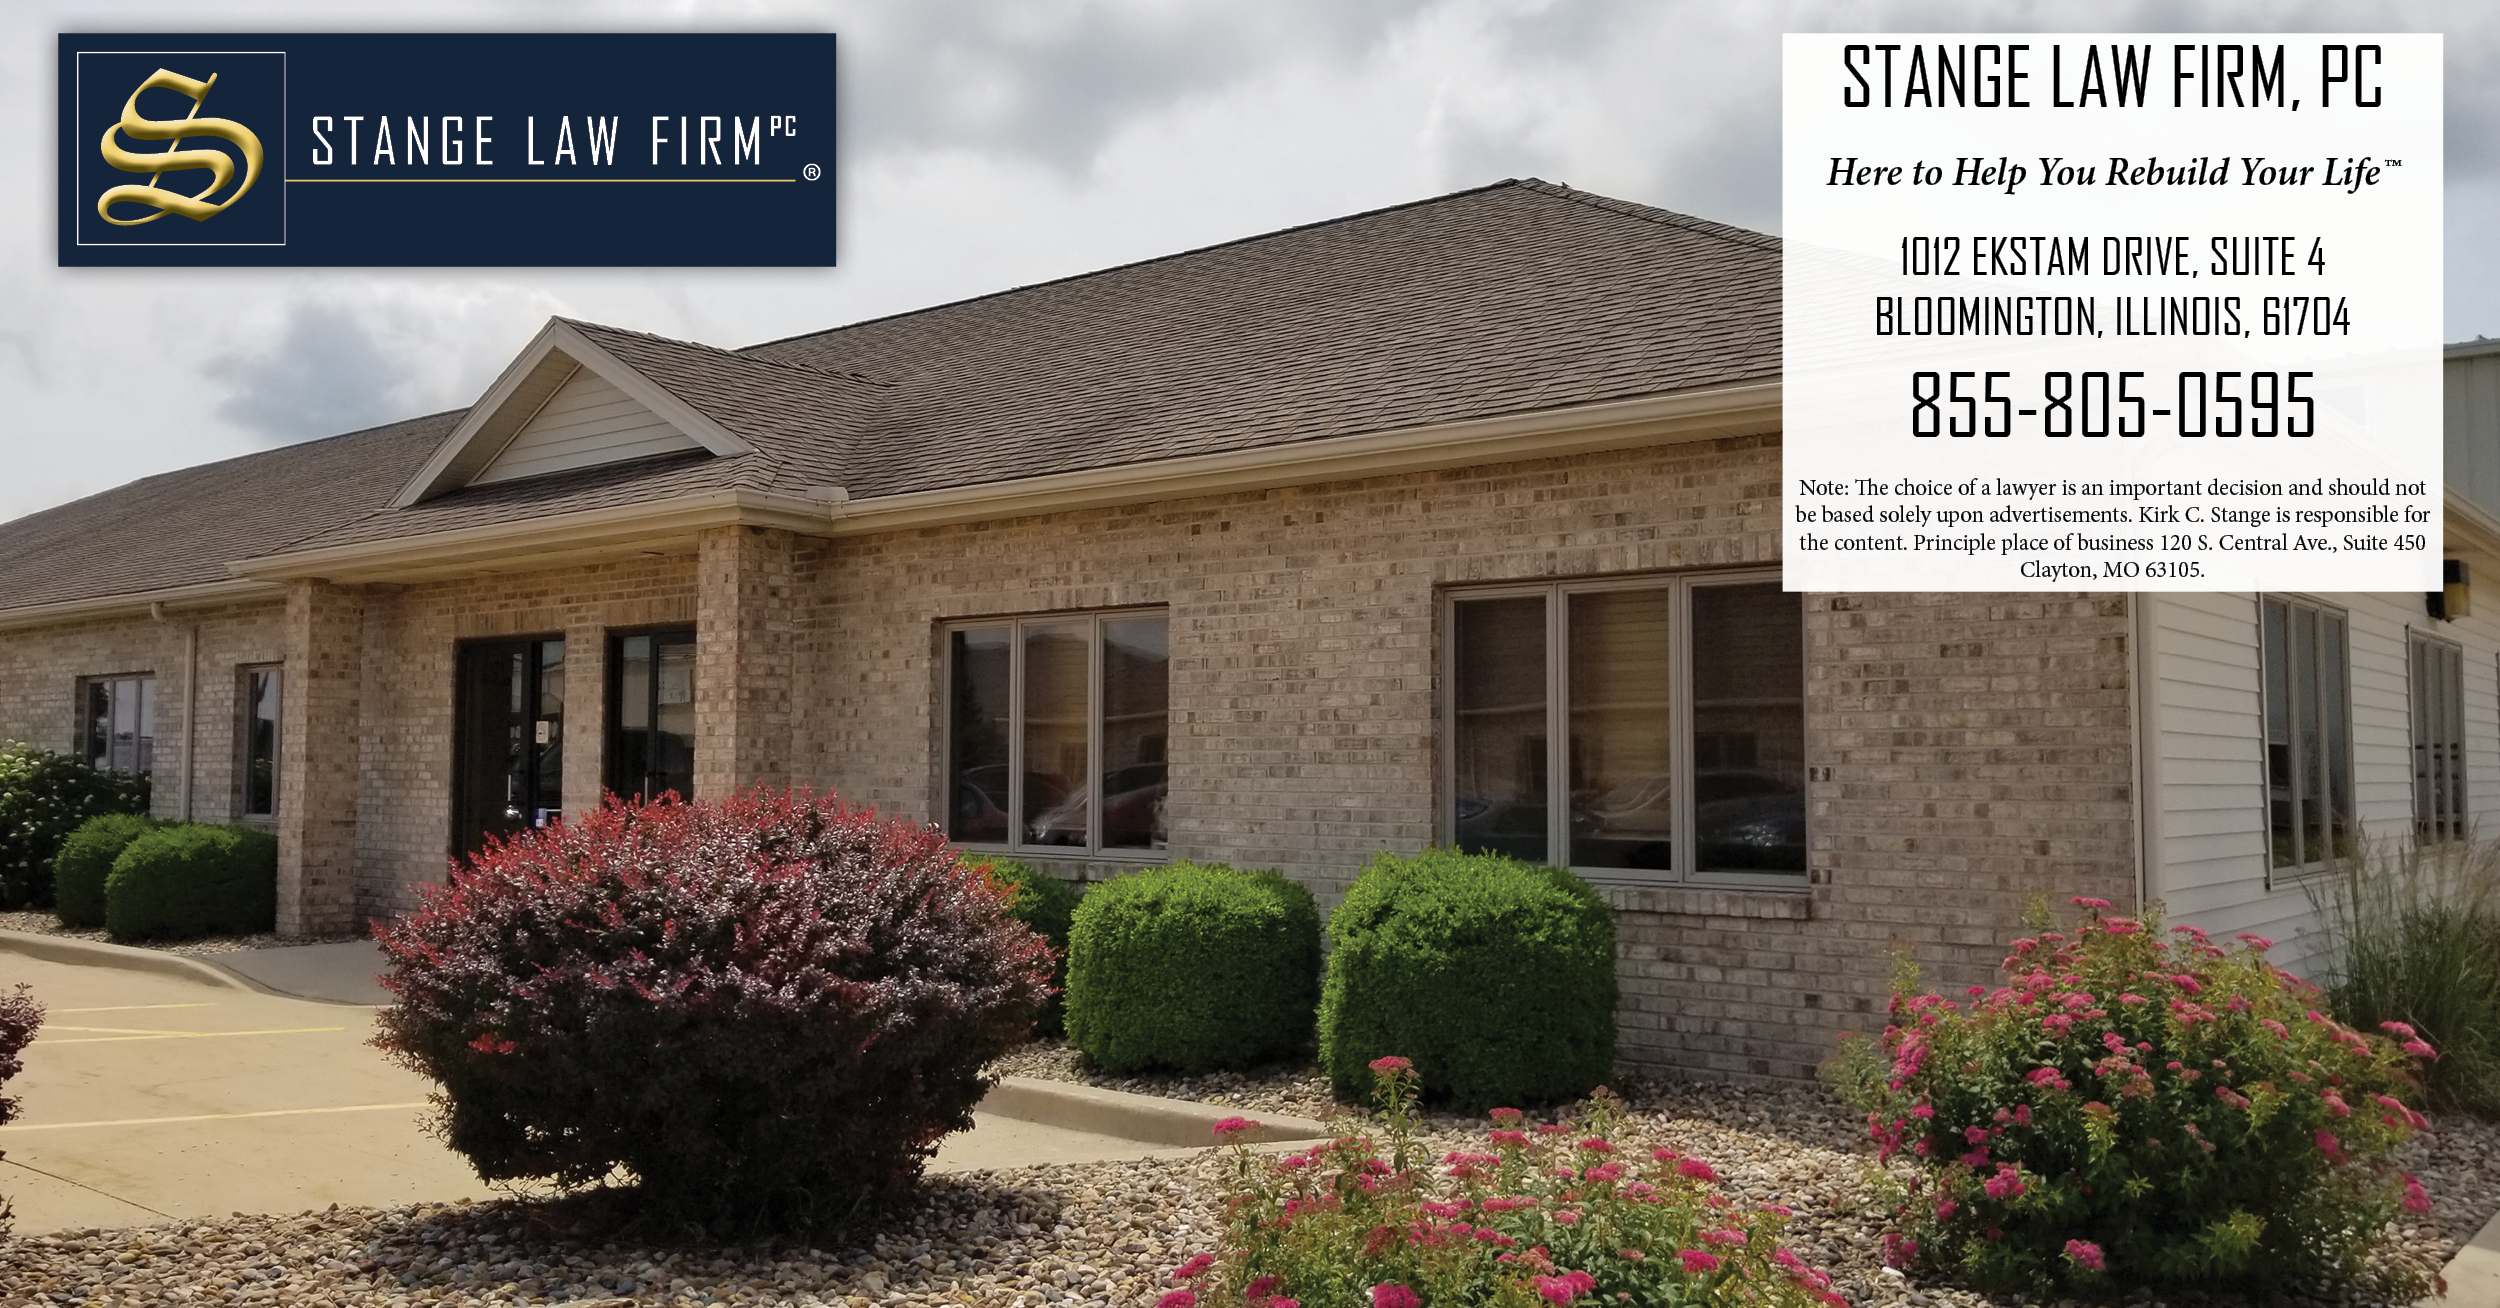 Stange Law Firm, PC Opening Family Law & Divorce Office in